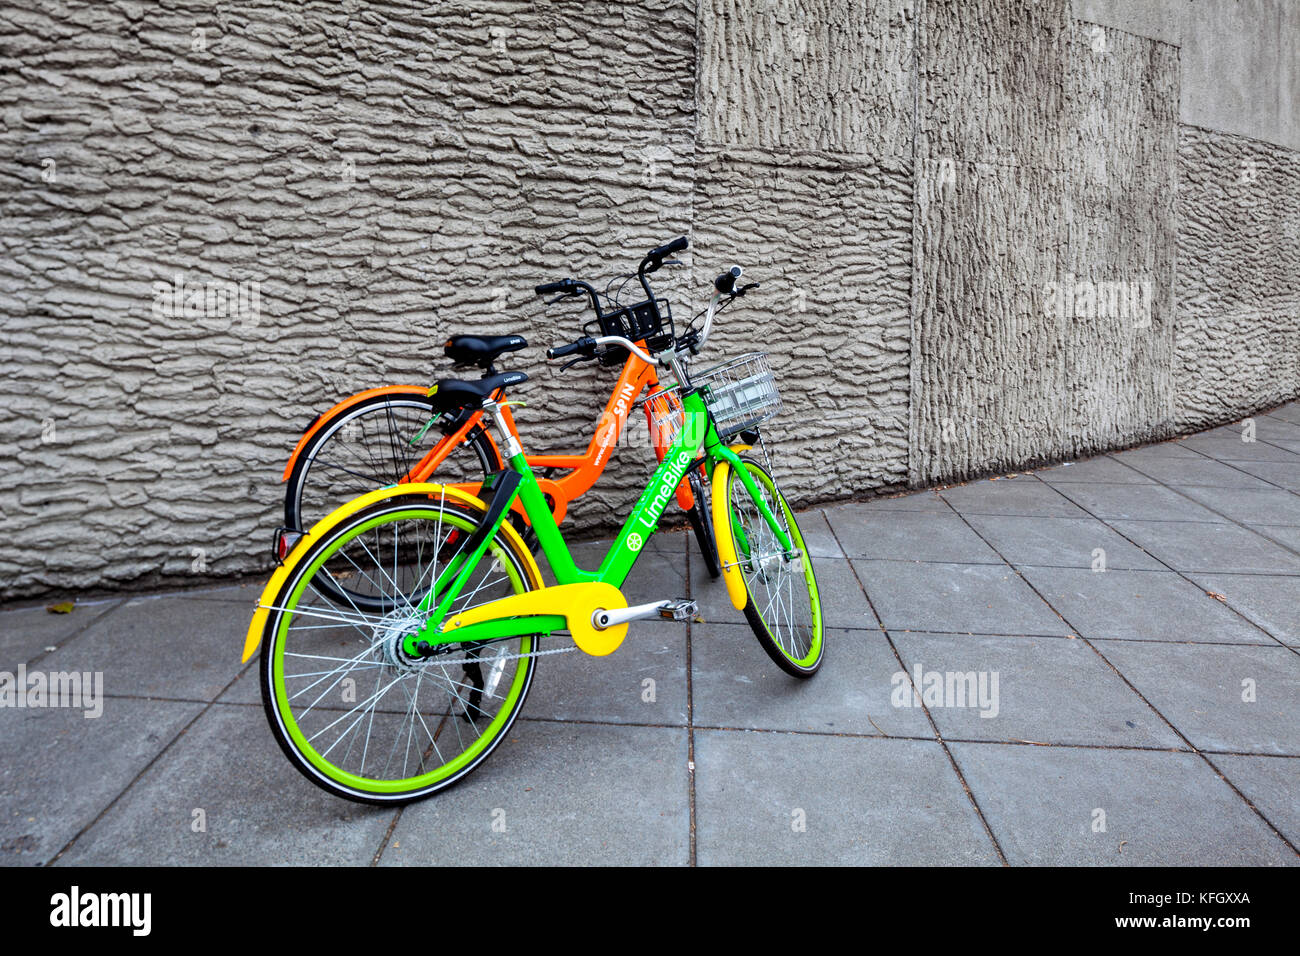 WA14161-00...WASHINGTON - Bikcycle sharing programs LimeBike and Spin in Seattle. - Stock Image